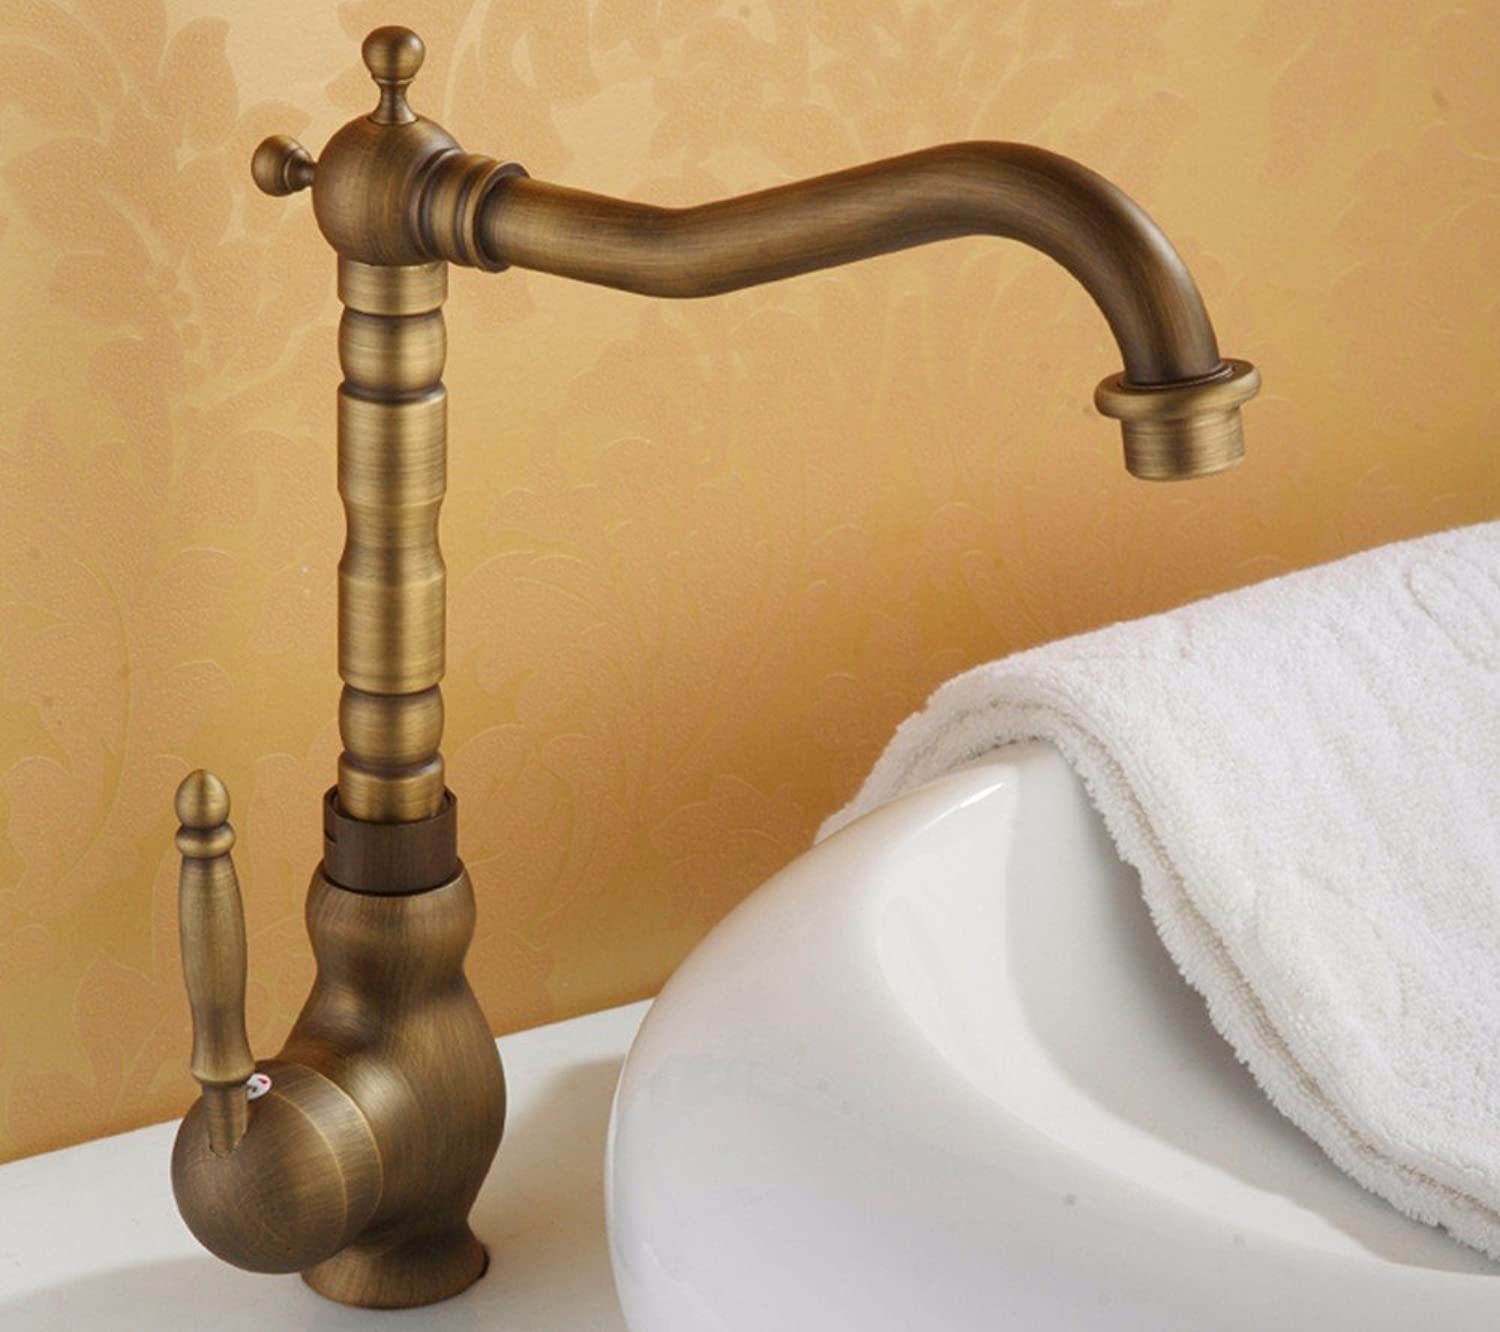 Hlluya Professional Sink Mixer Tap Kitchen Faucet Copper, cold and hot, Single Hole, plus high, basins, Sinks Faucets, 4